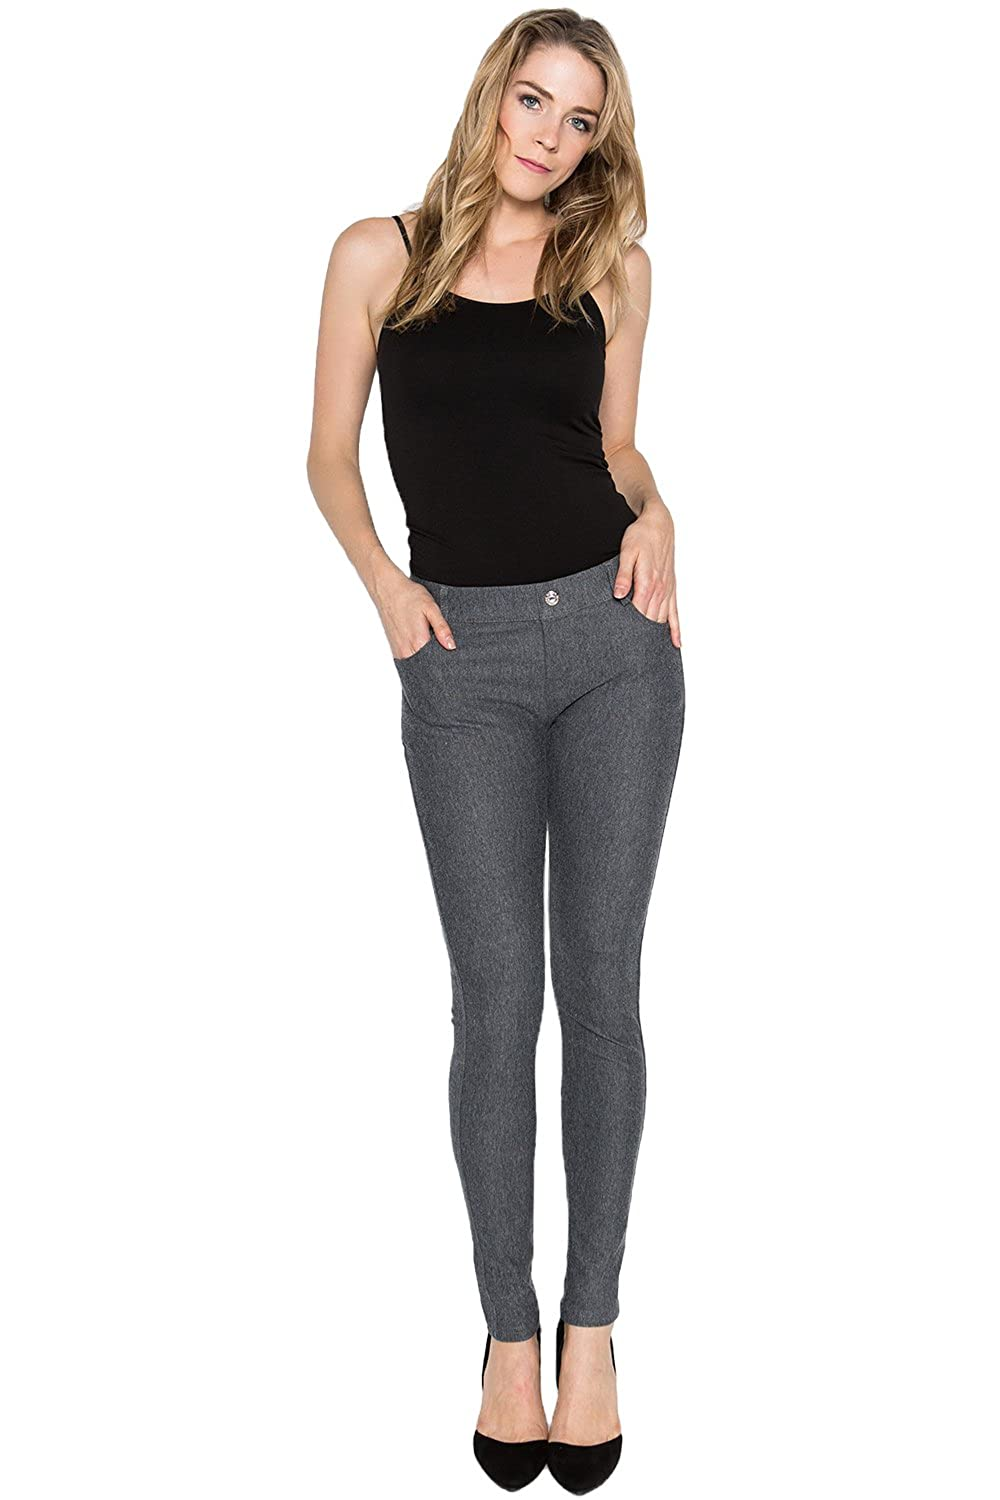 Grey Trinity Jeans Women's Pull On Solid Fashion Skinny Jeggings Pants (Regular & Plus)